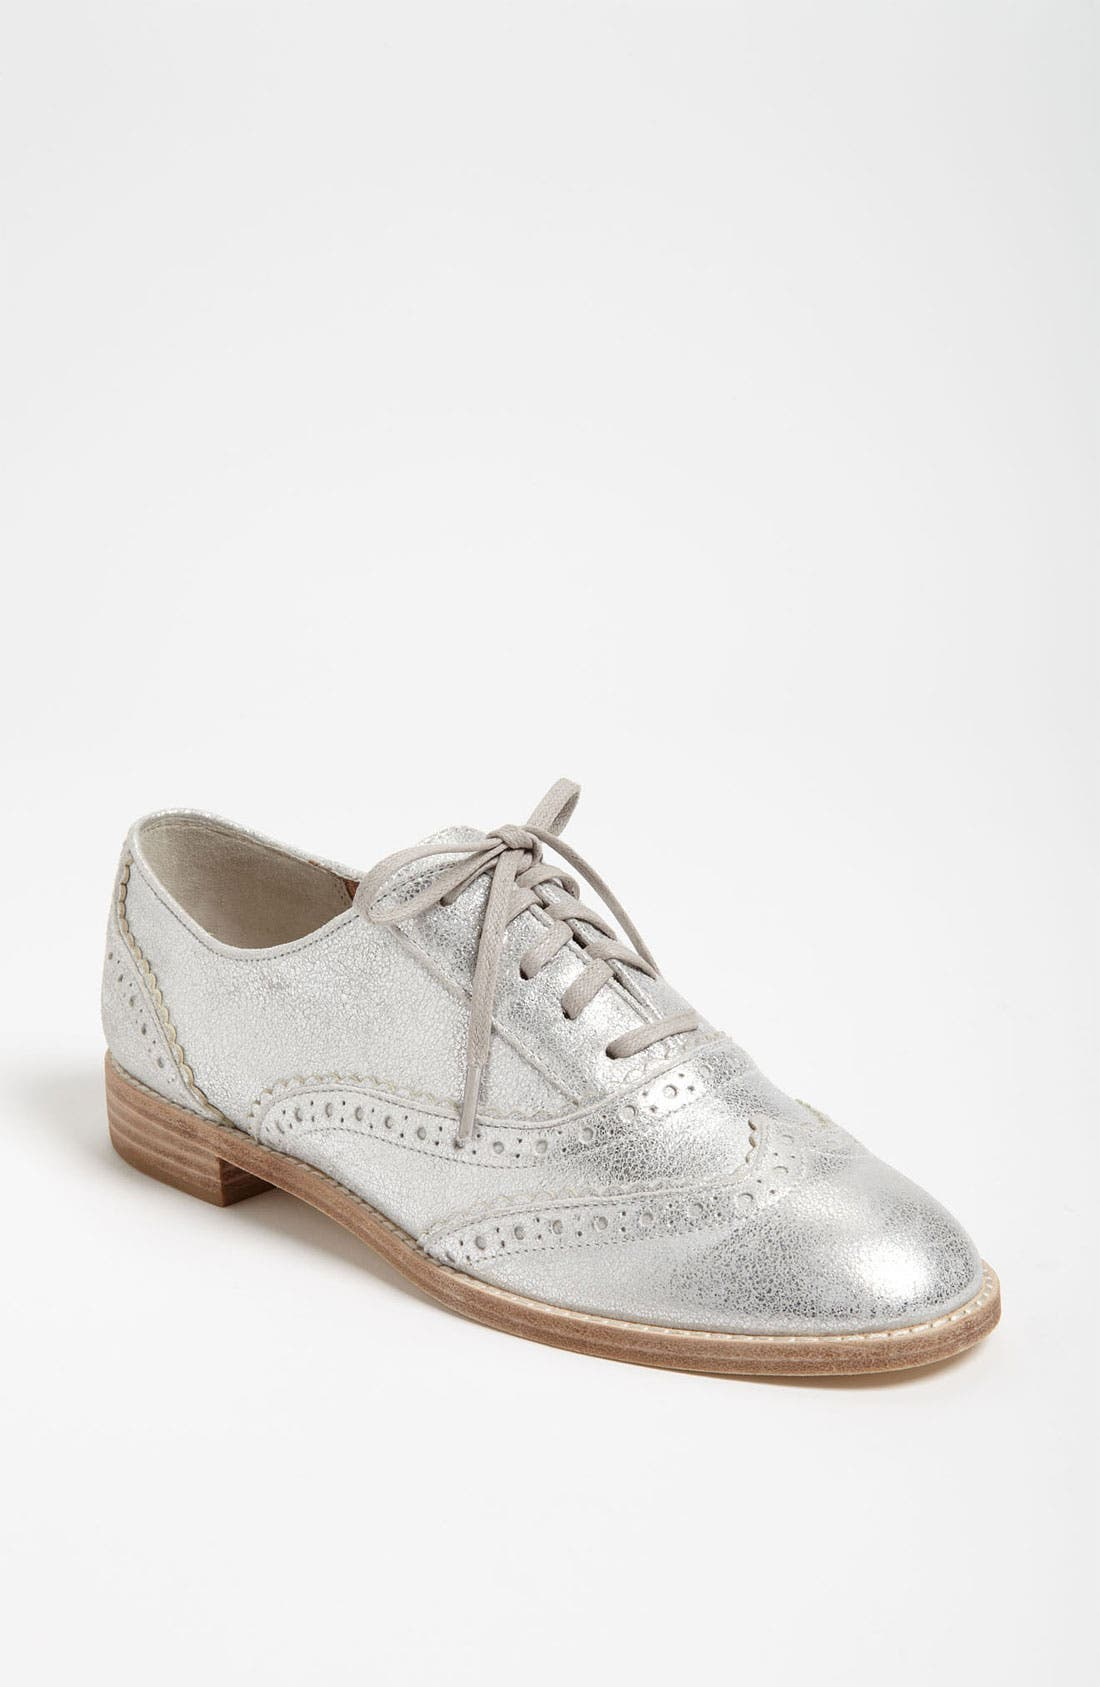 Alternate Image 1 Selected - Nina Originals 'Etta' Oxford